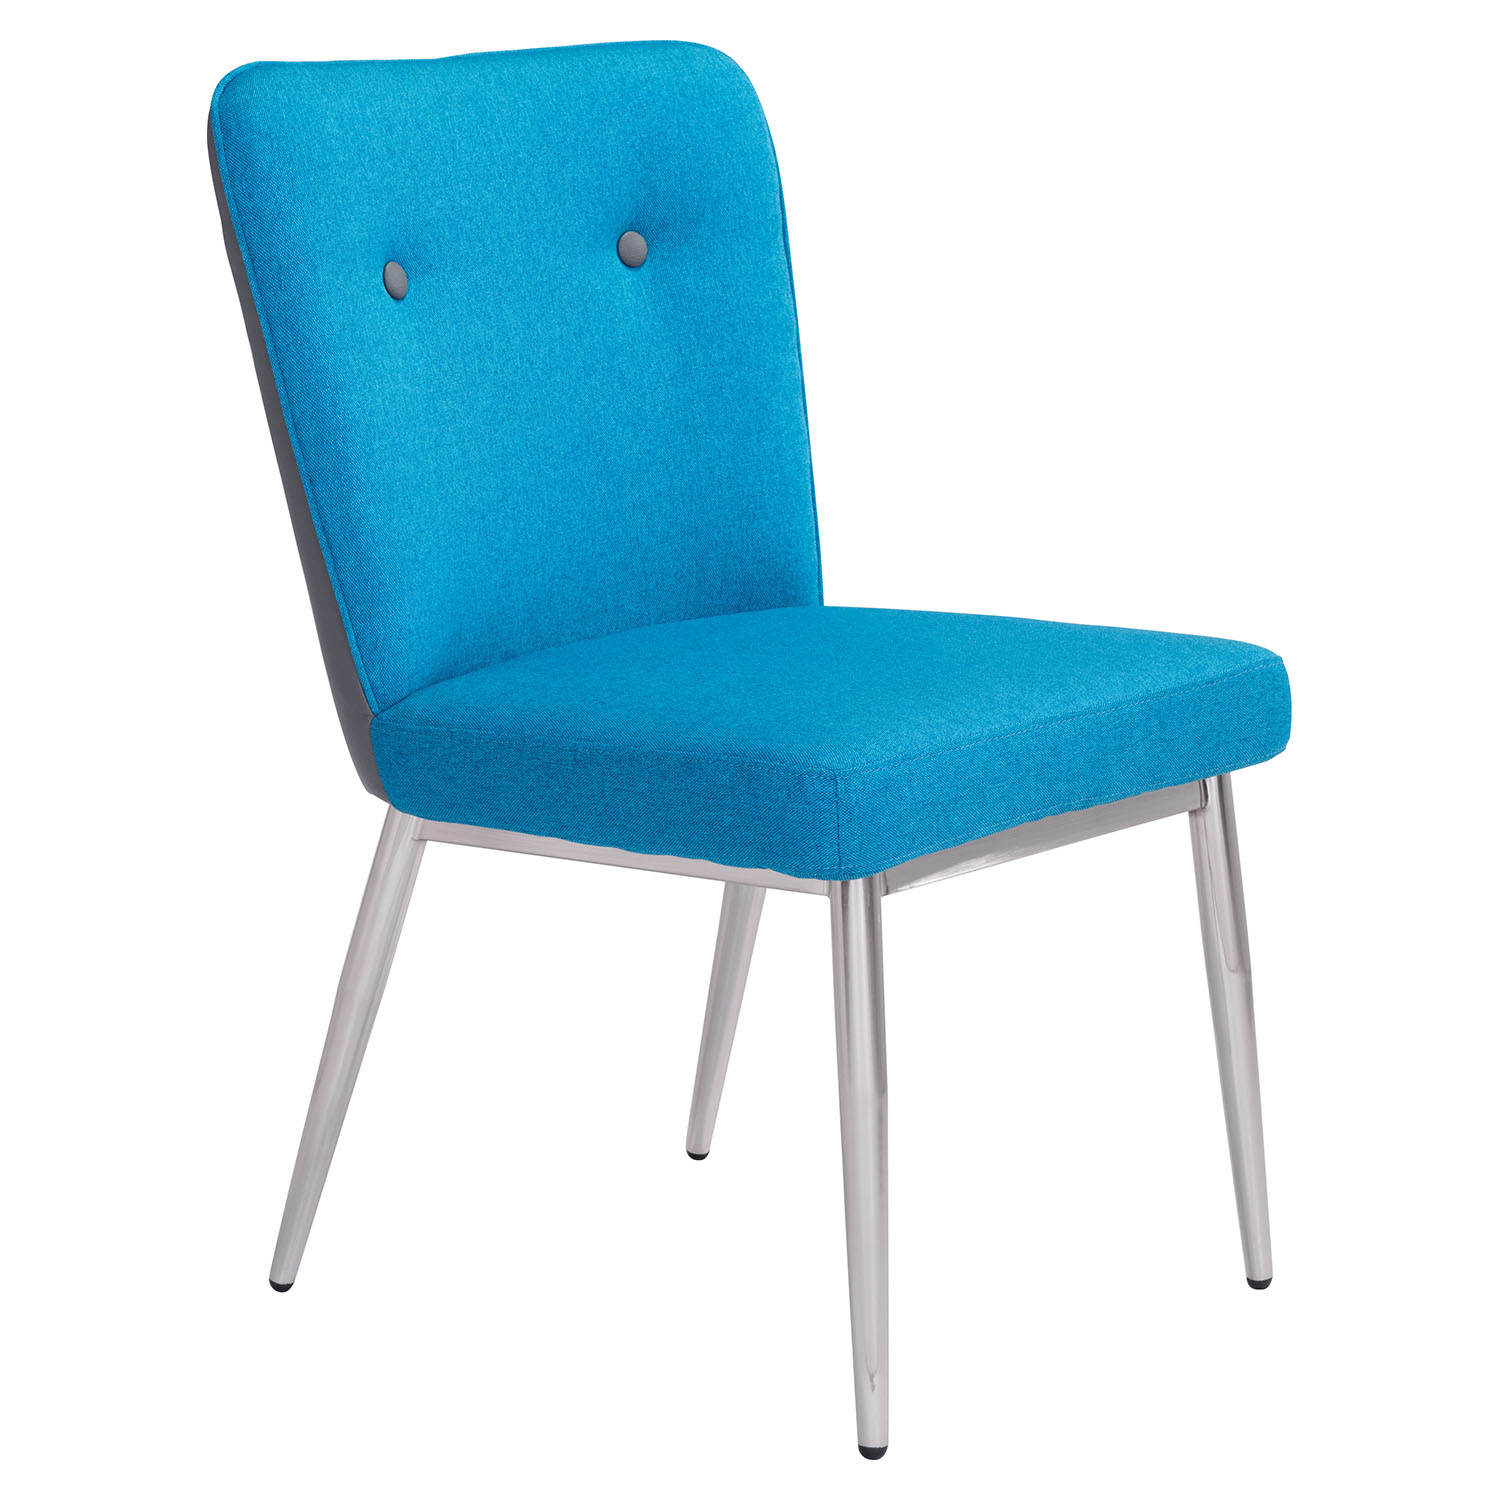 Hope Dining Chair - Tufted, Blue and Gray